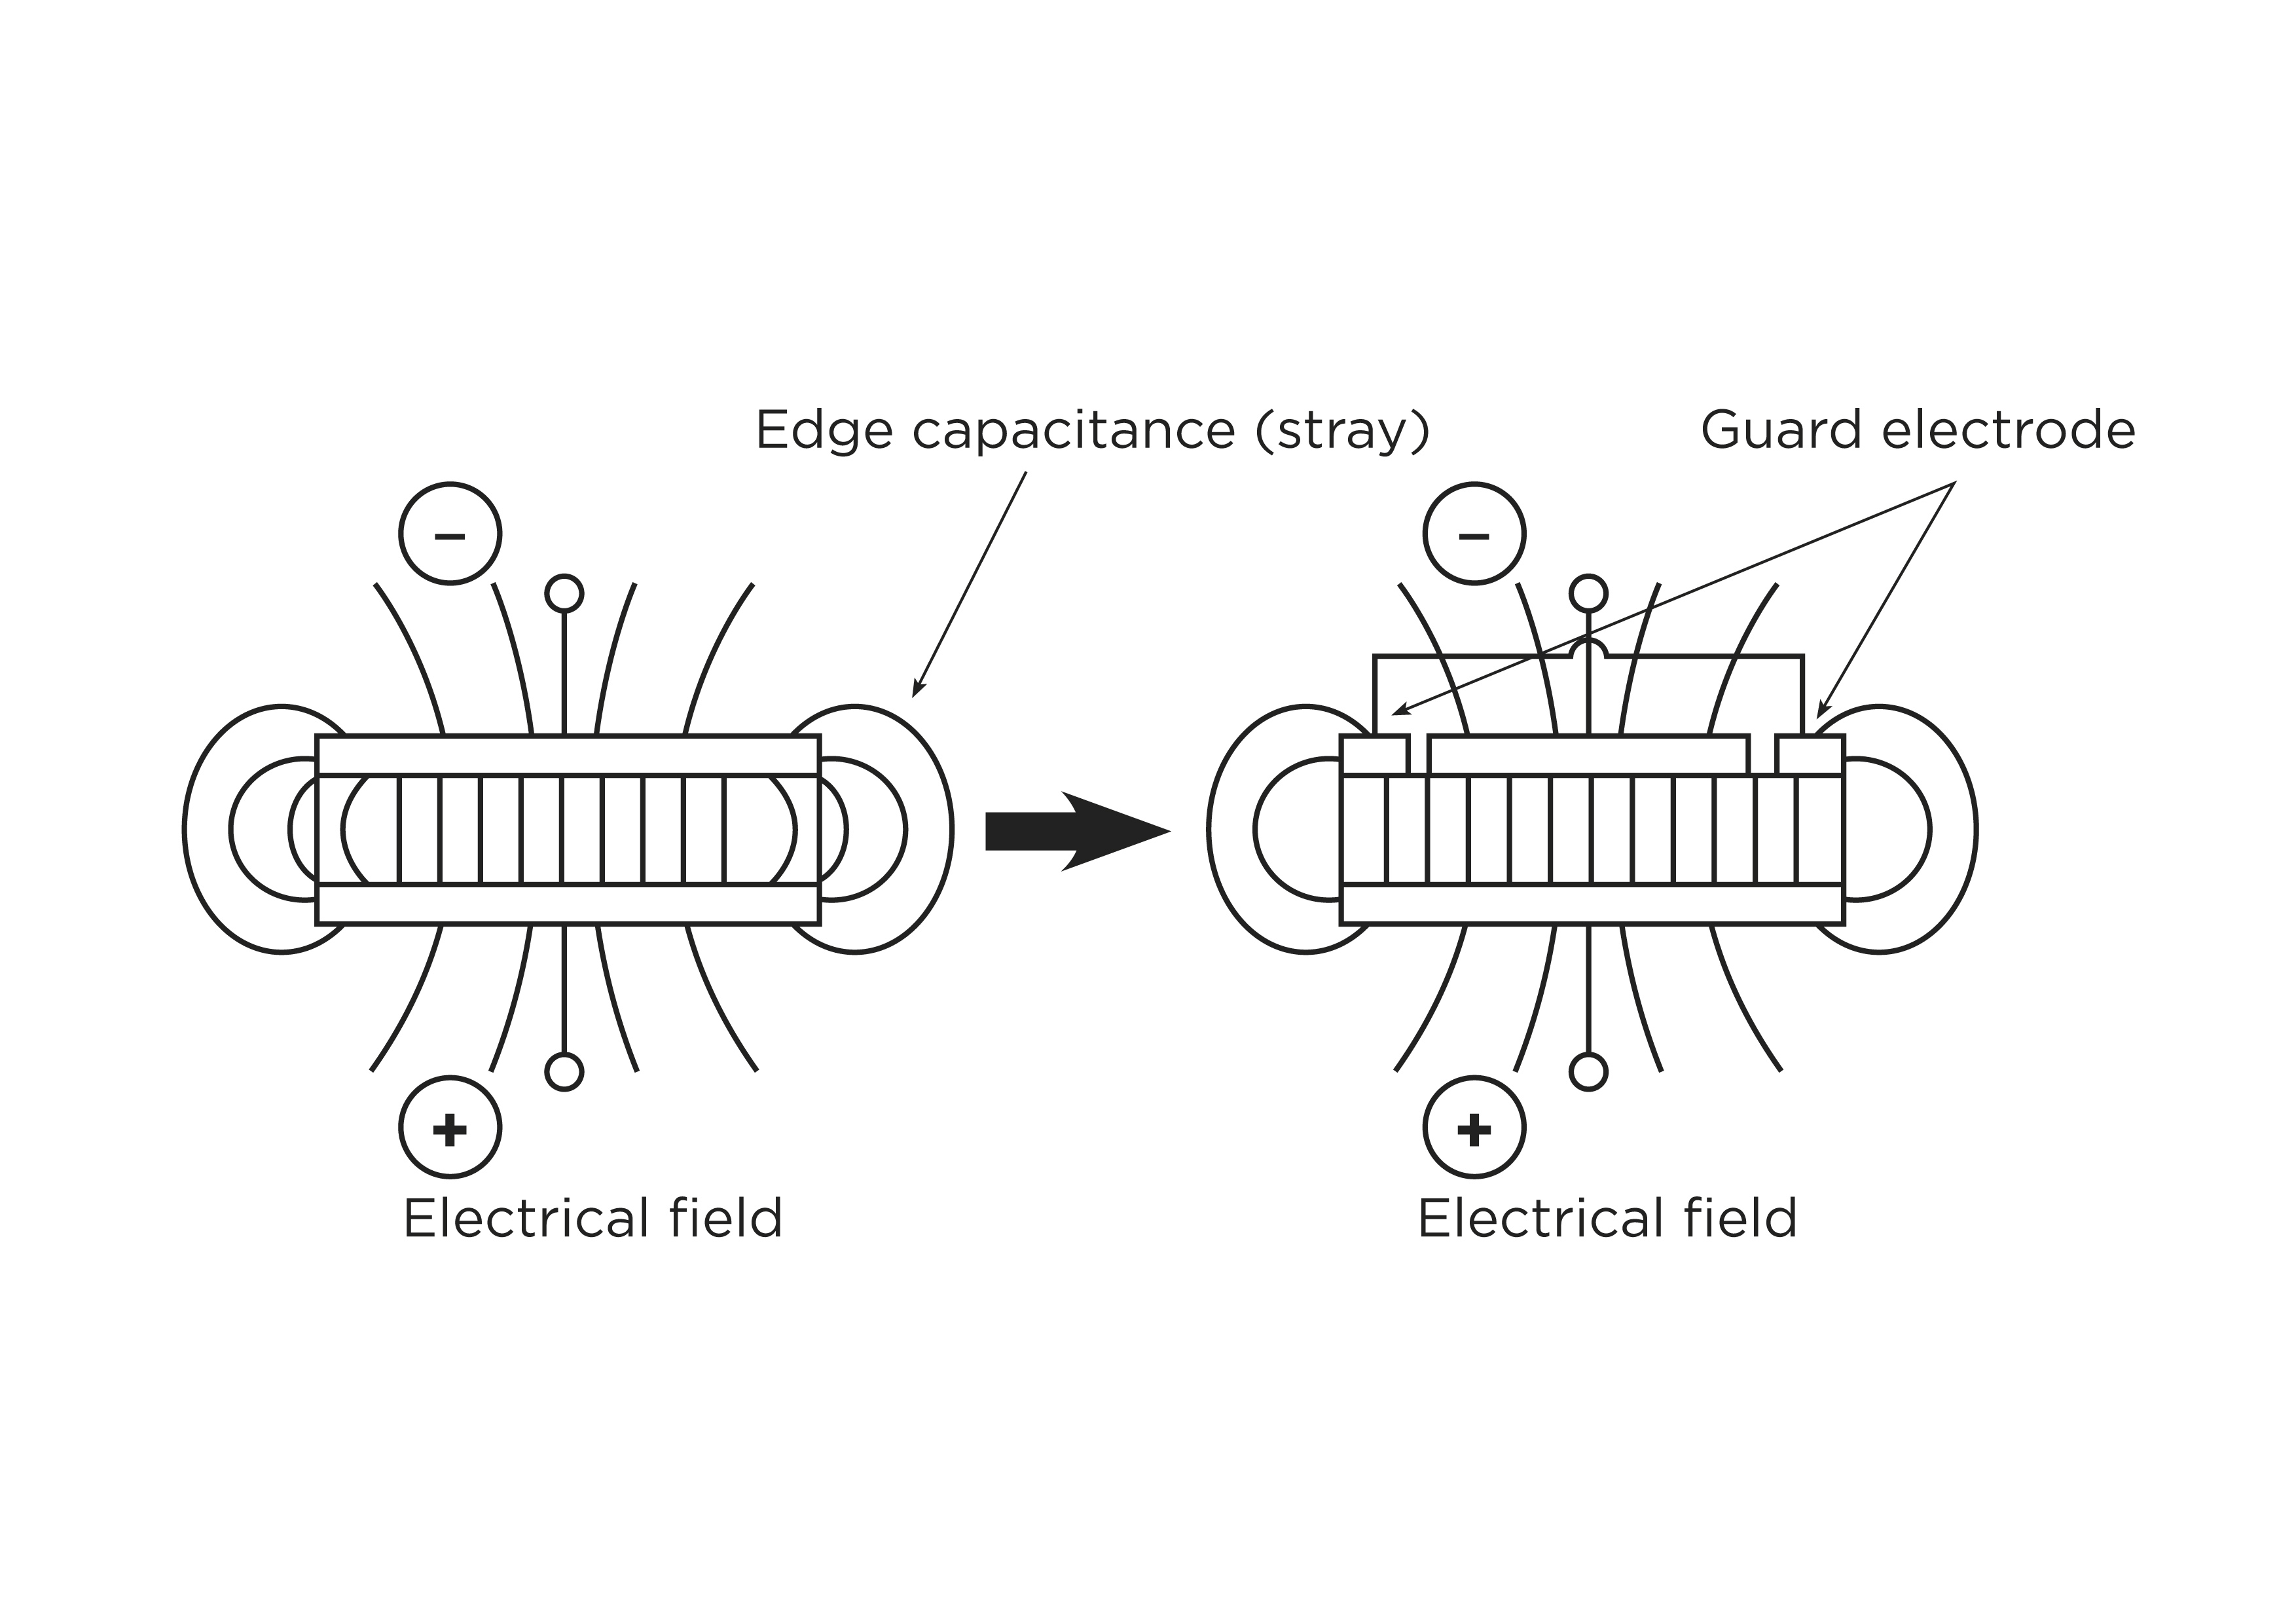 measuring critical material properties of capacitors and inductors